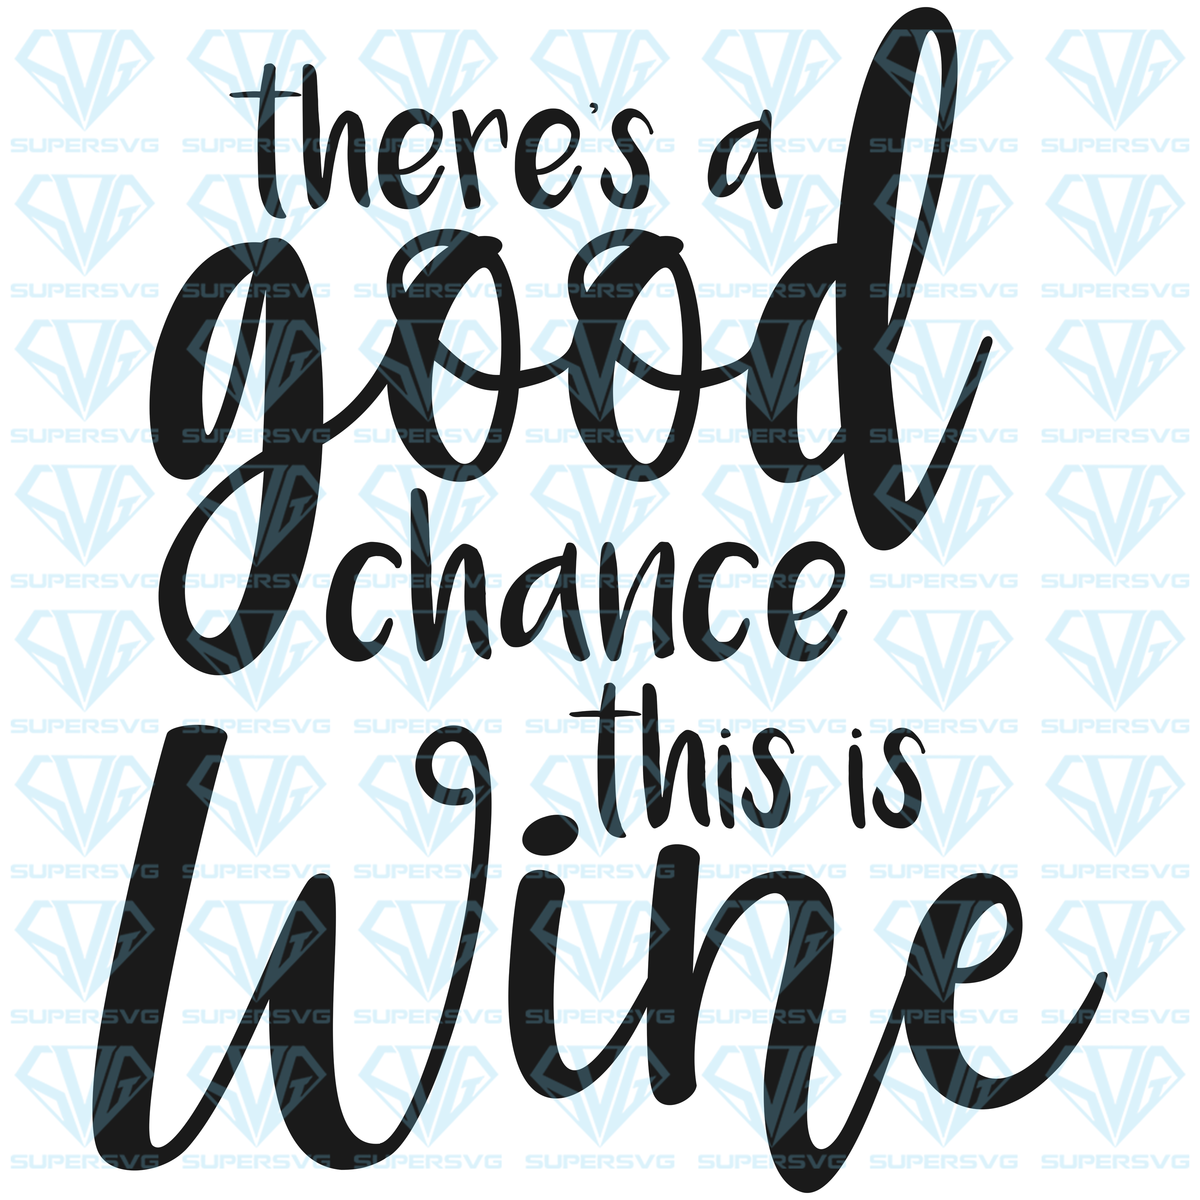 Download Free Svg Files There's A Good Chance This is Wine SVG ...